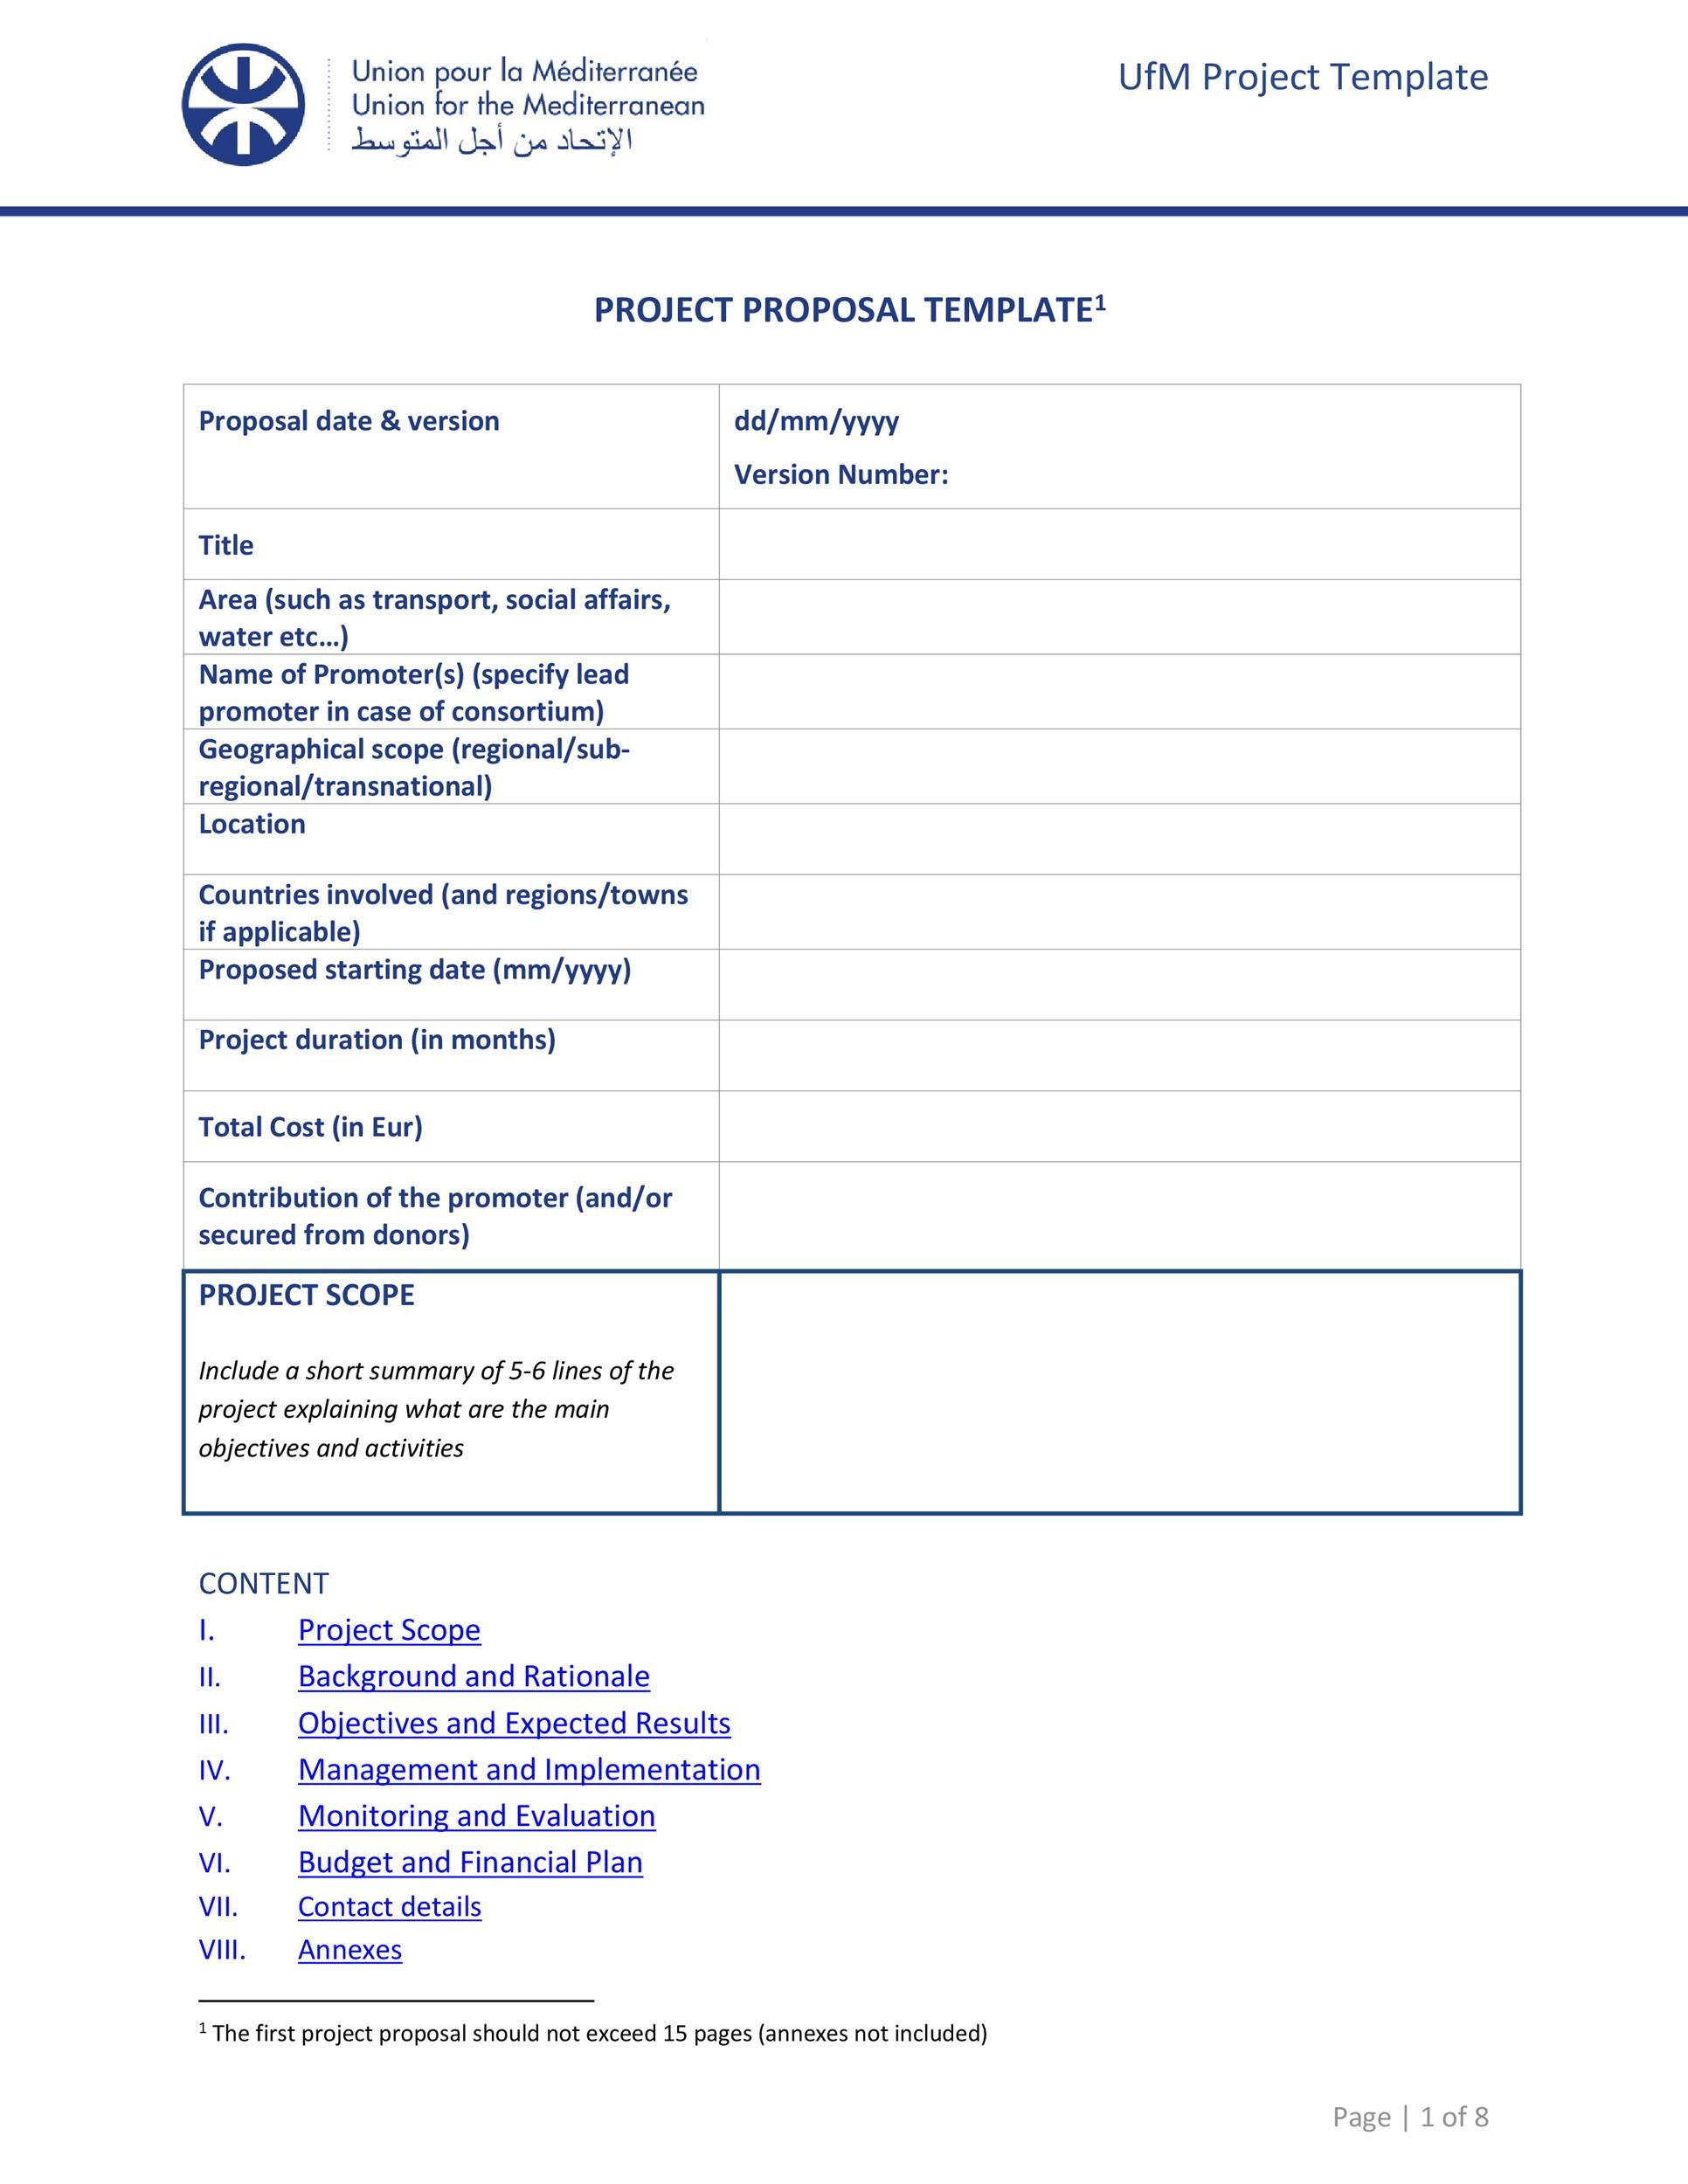 43 Professional Project Proposal Templates - Template Lab